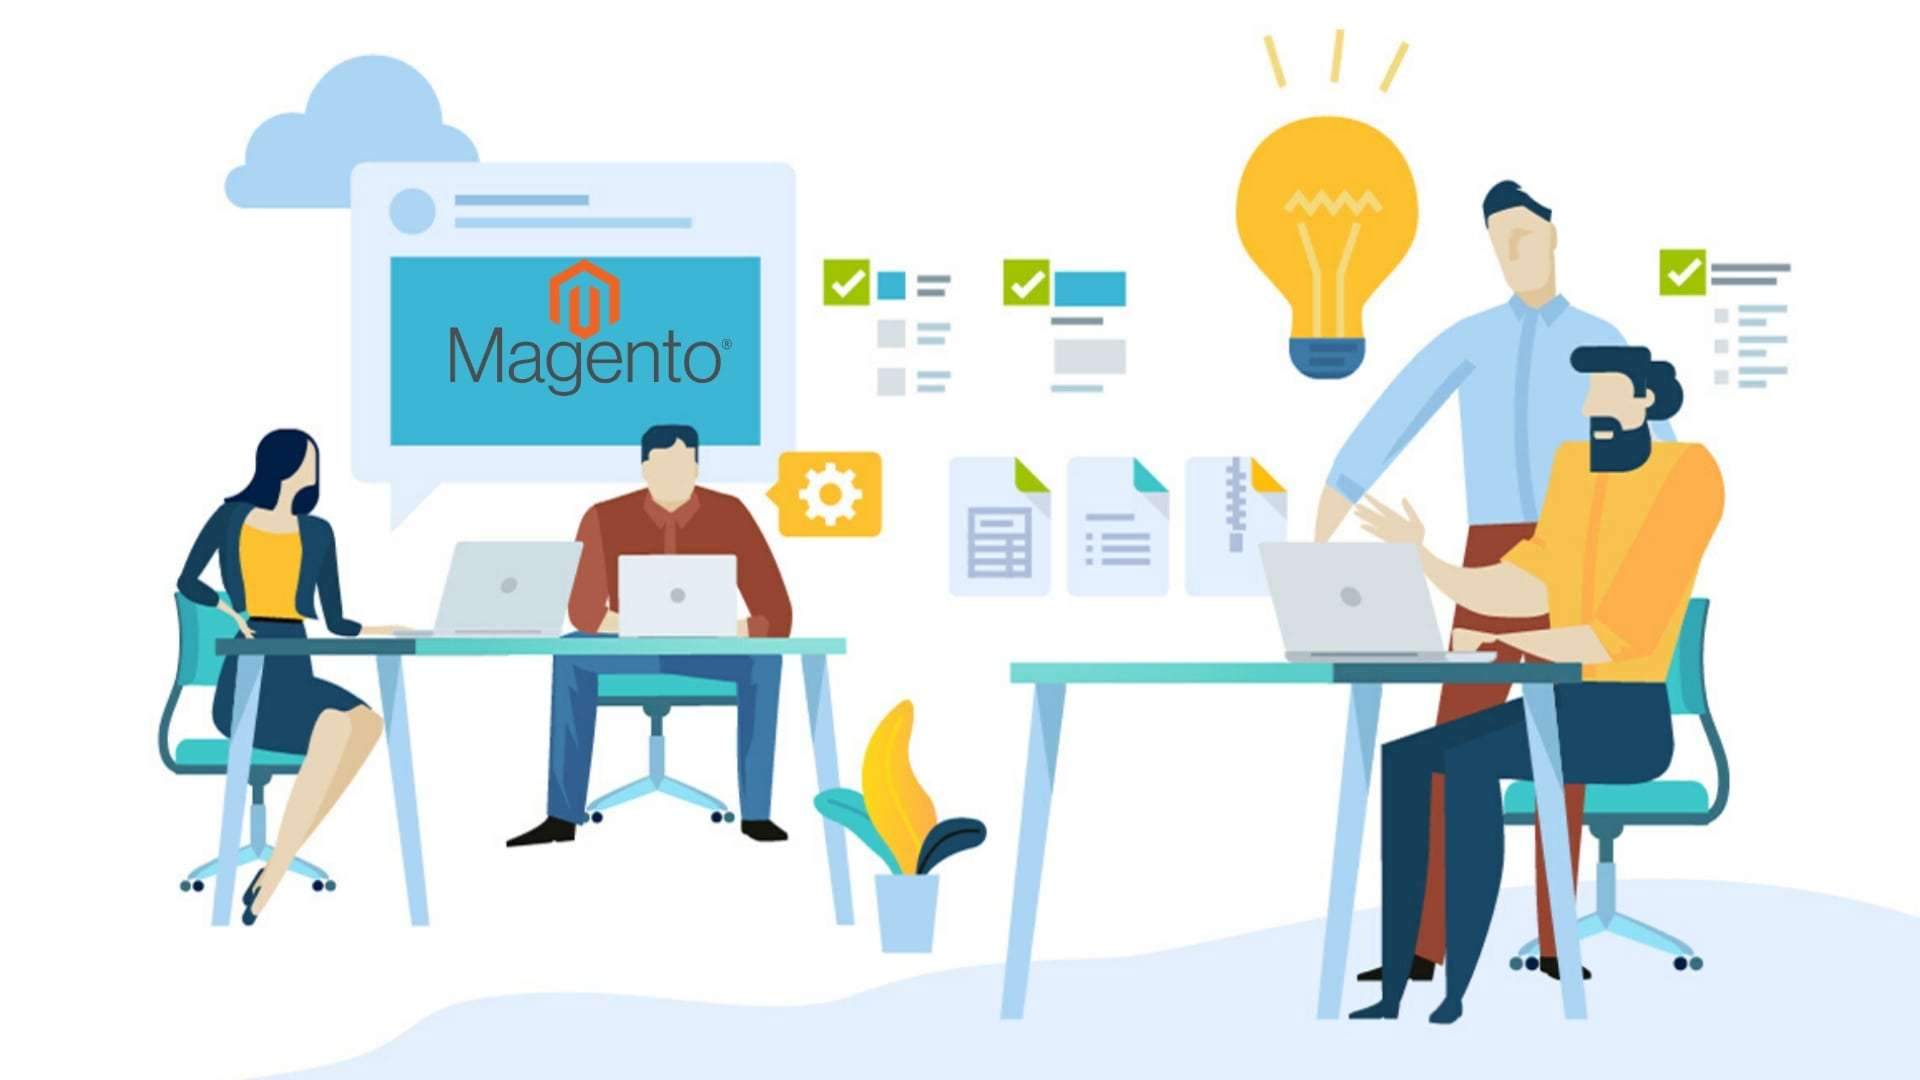 Magento, the choice of luxury brands